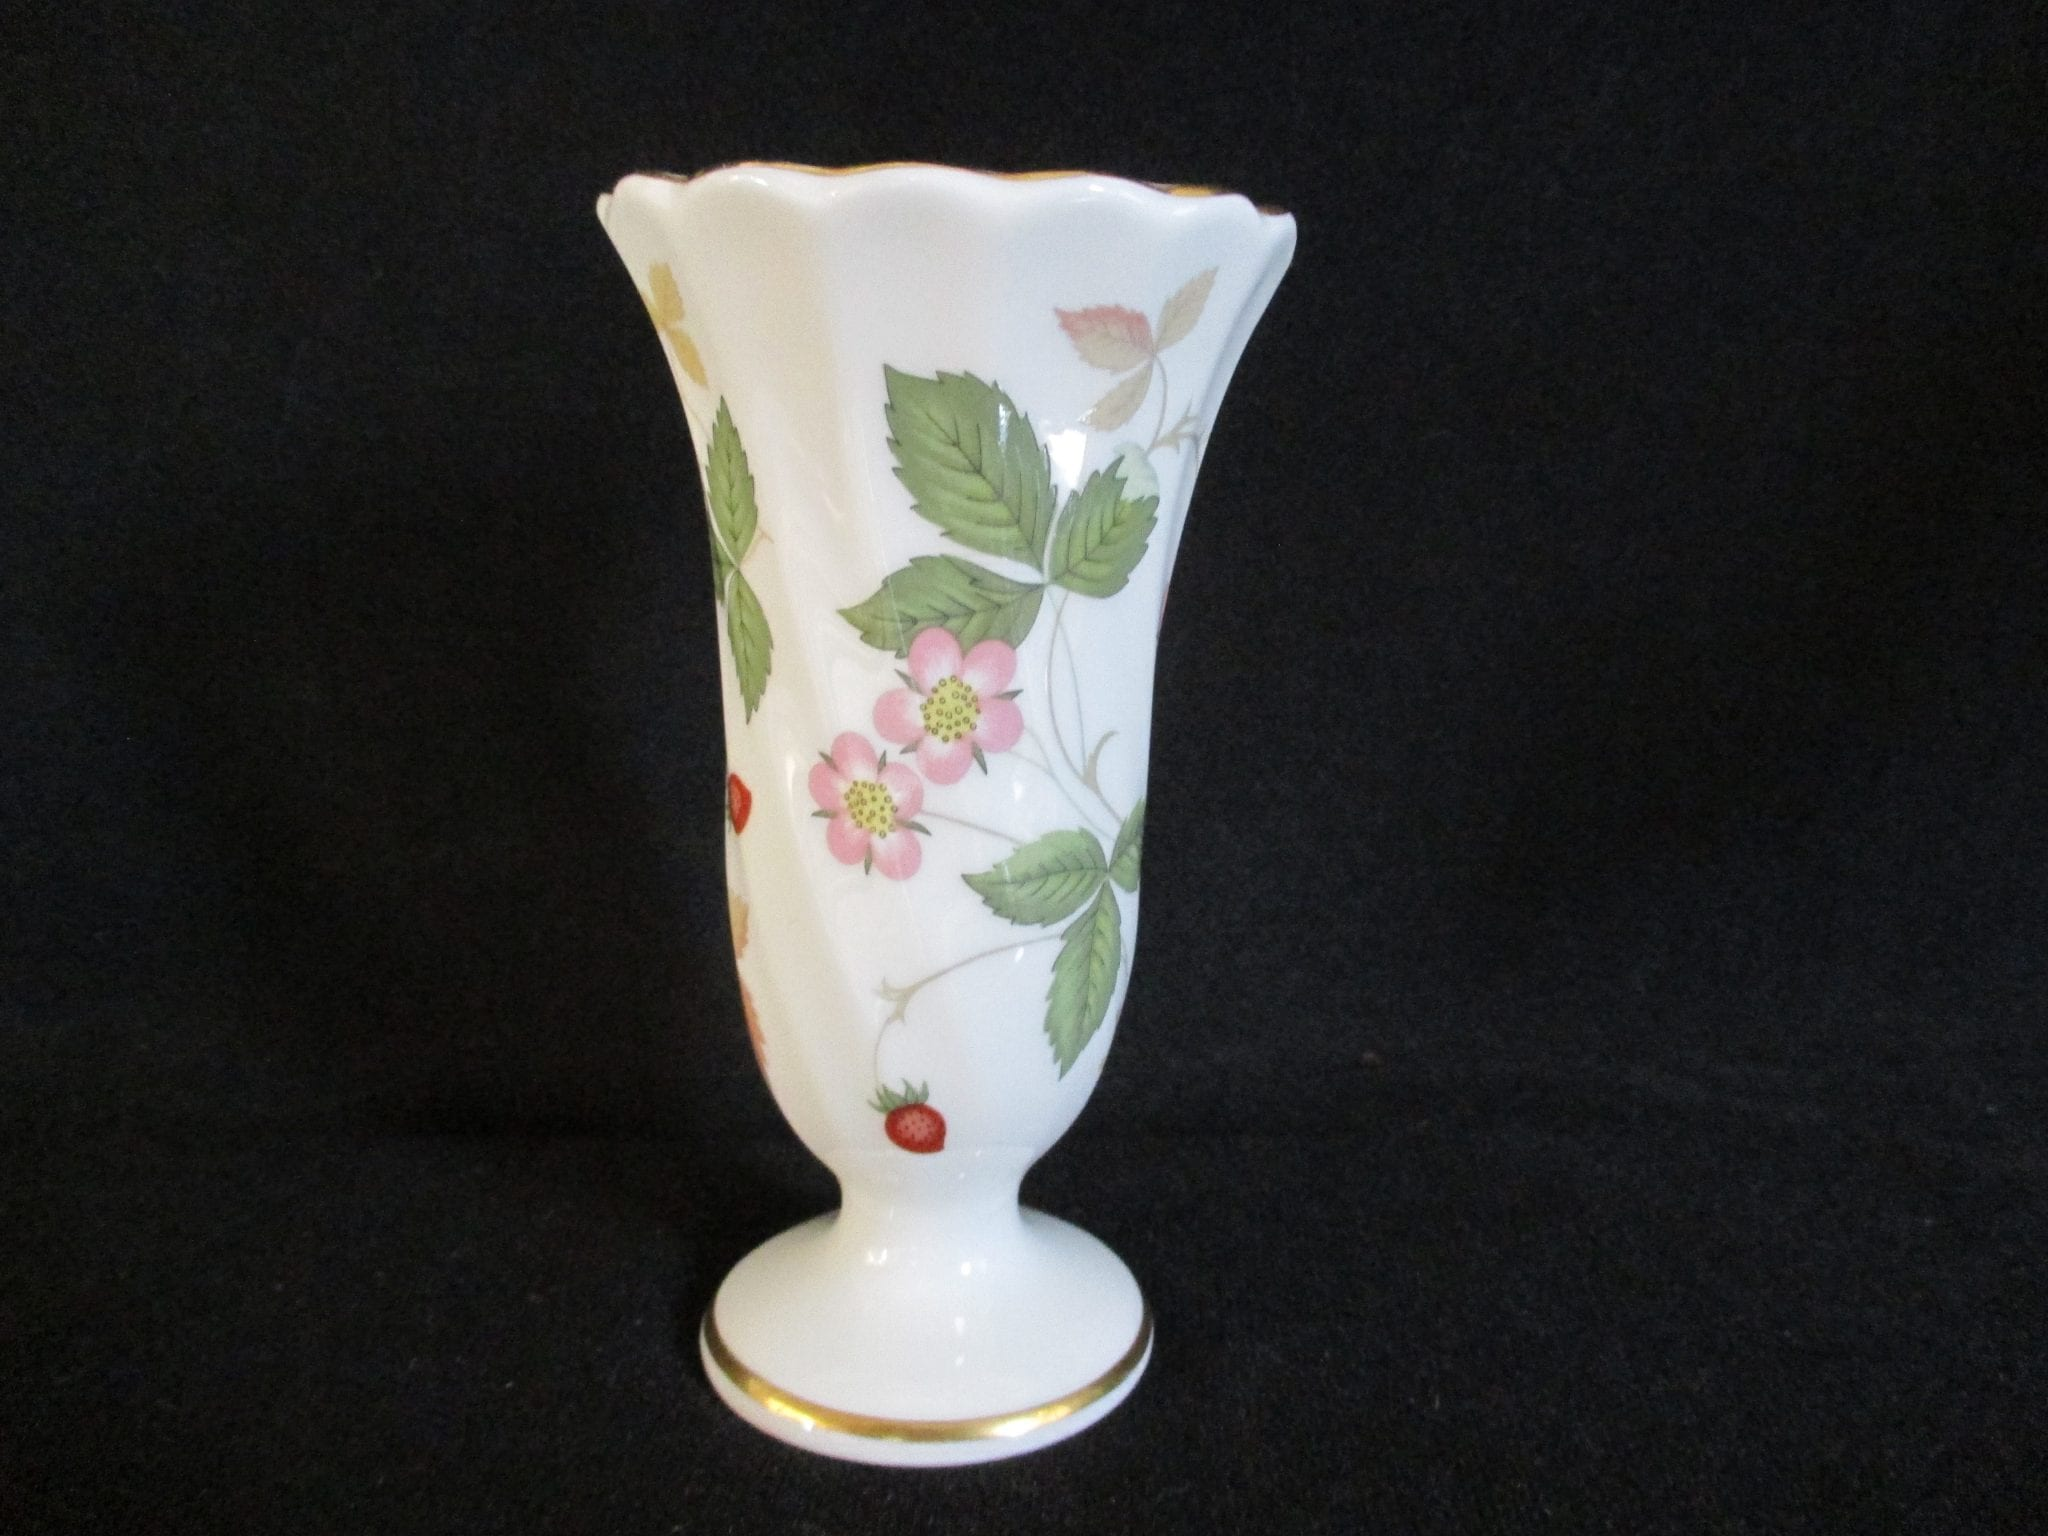 This Is A Lovely Vintage Wedgwood Bud Vase Named Wild Strawberry It Mainly White Glazed Background With Delicate Painting Of